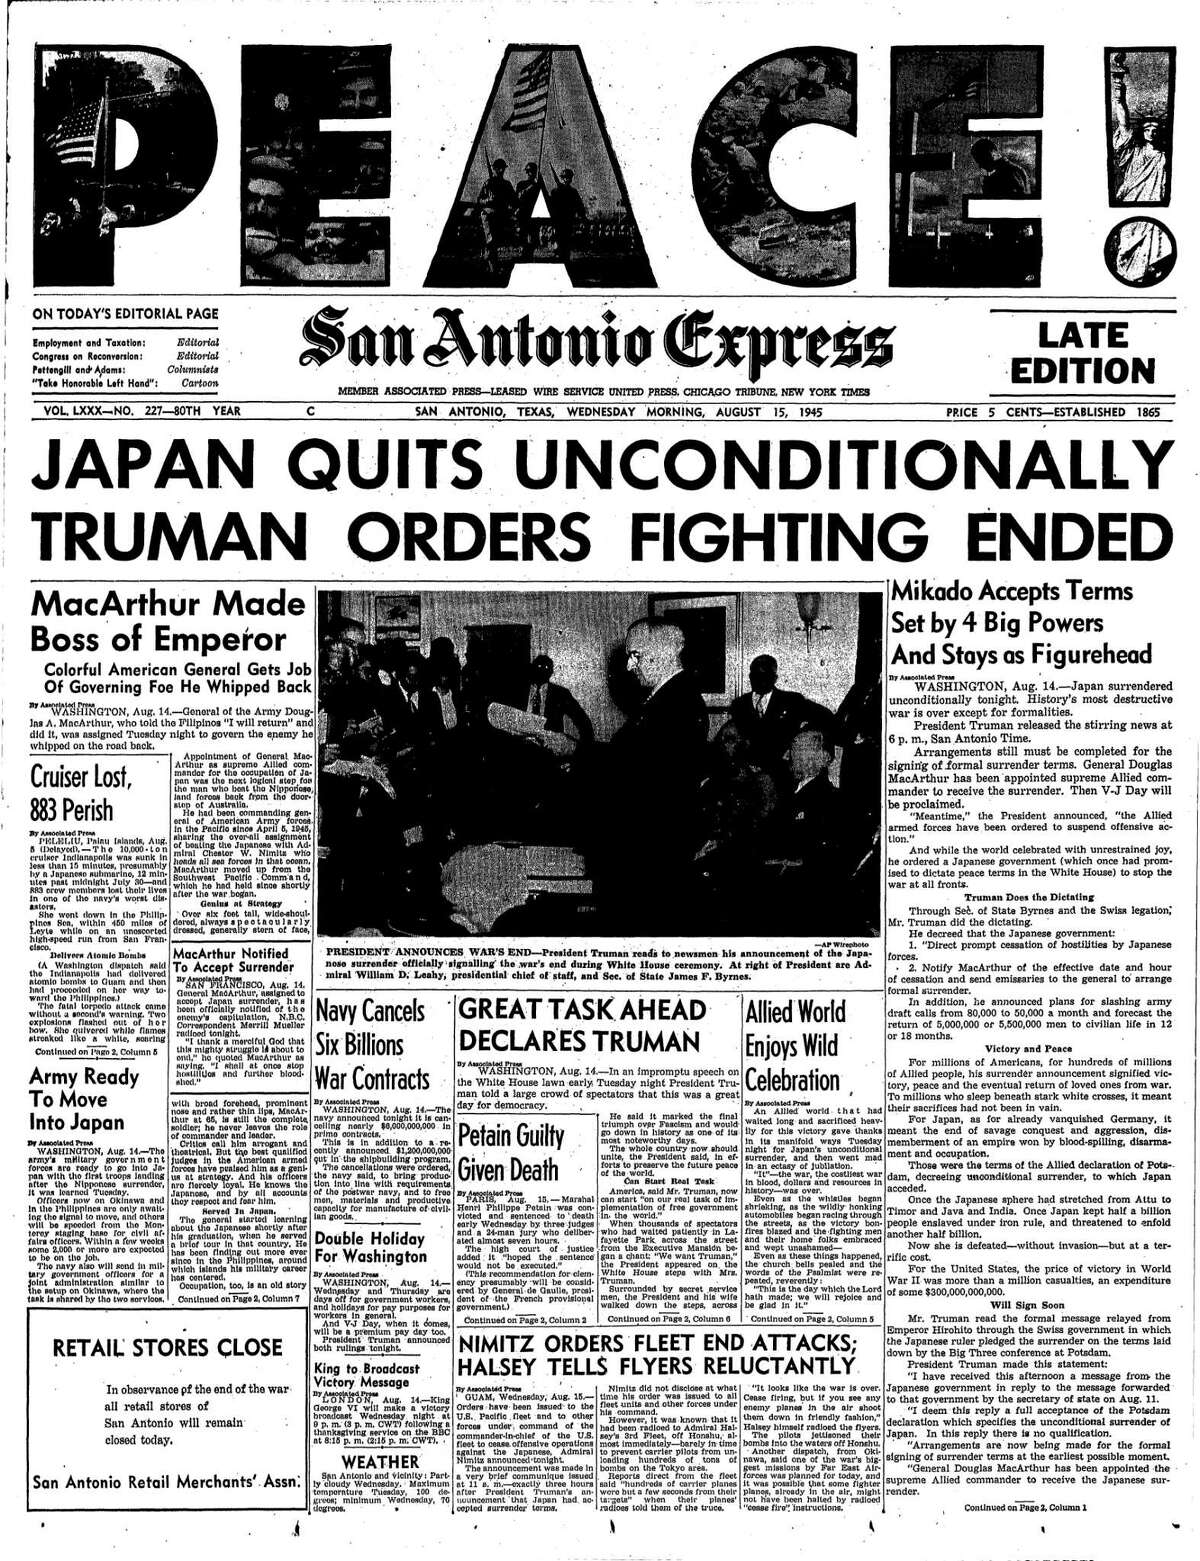 """Front page of Aug. 15, 1945 San Antonio Express, """"PEACE! JAPAN QUITS UNCONDITIONALLY; TRUMAN ORDERS FIGHTING TO END"""""""